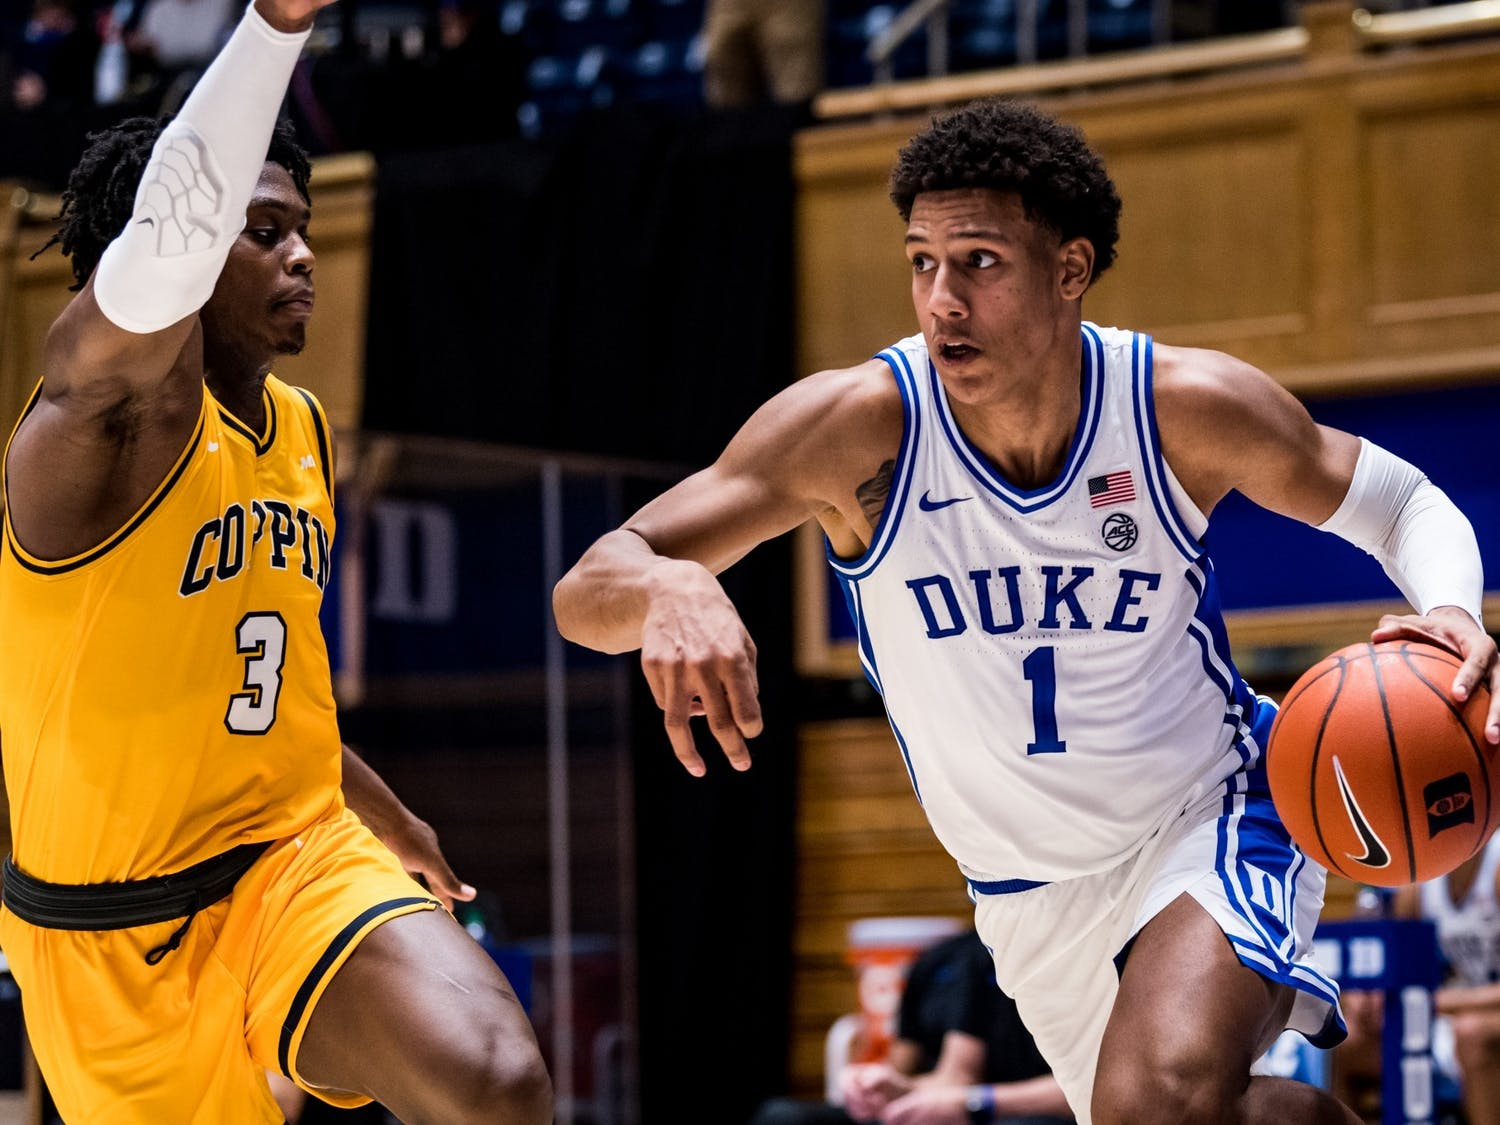 Johnson will likely be a first round pick in this year's NBA Draft.